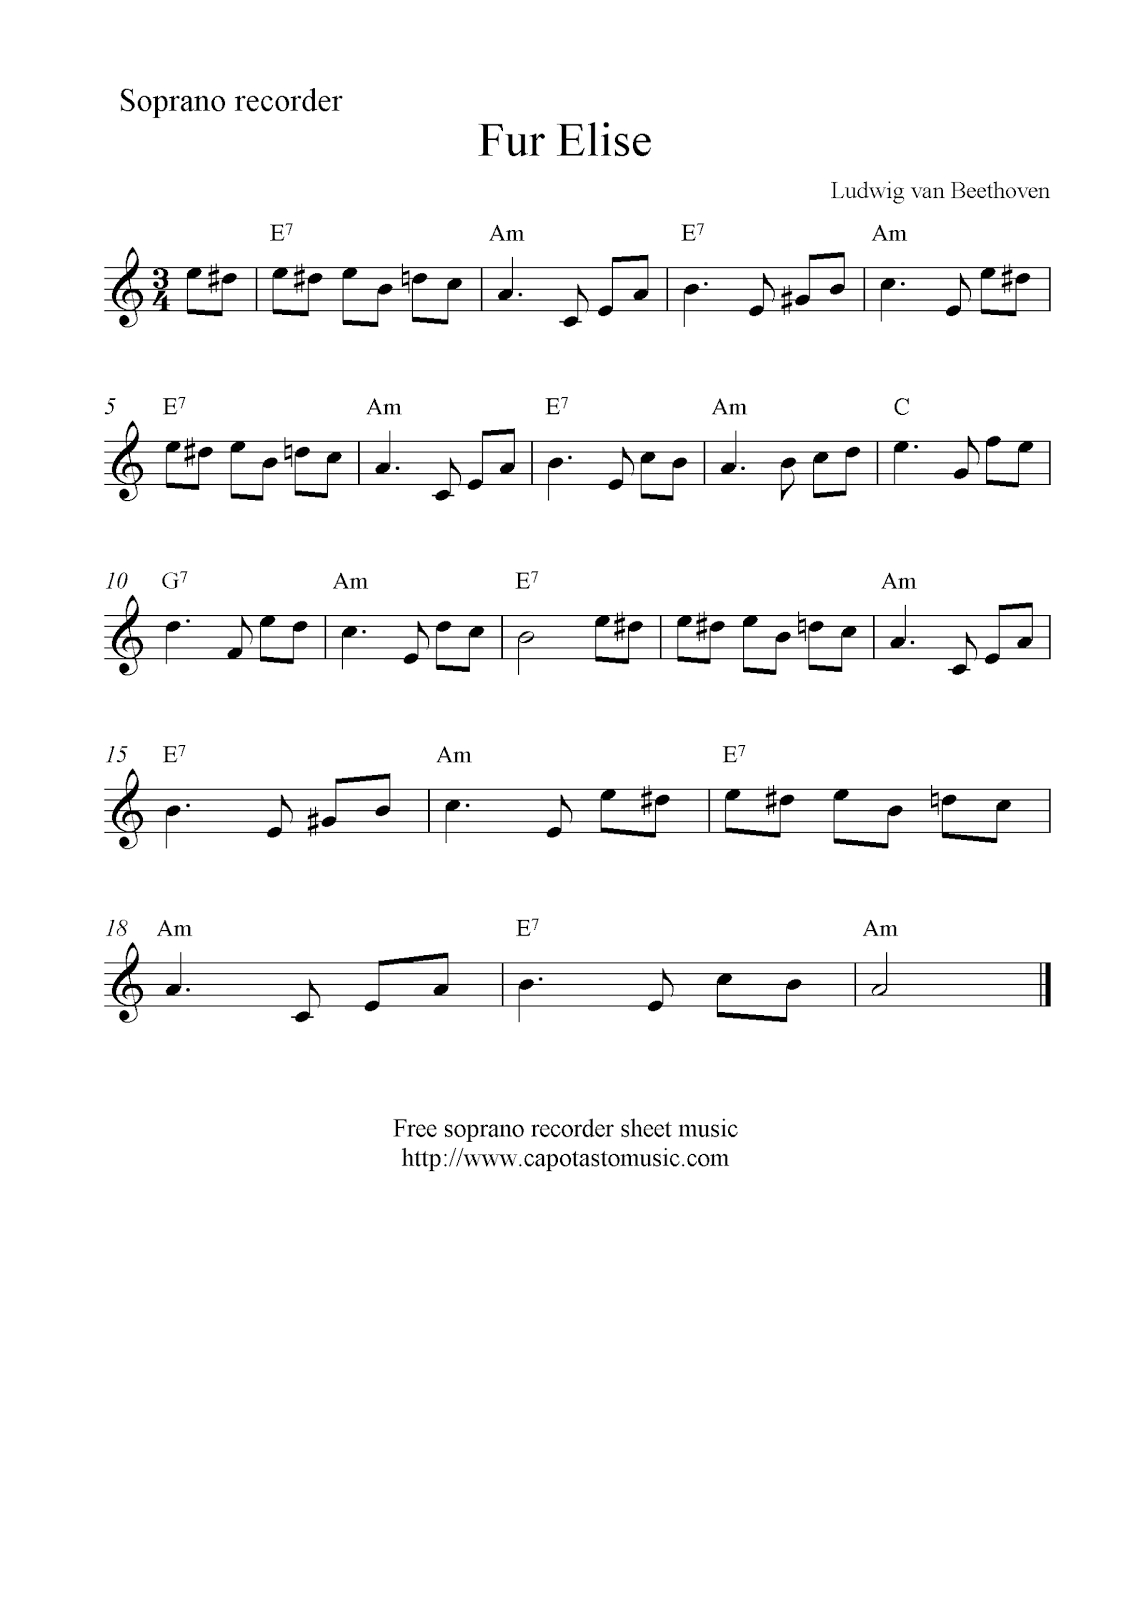 Fur Elise, Free Soprano Recorder Sheet Music Notes - Free Printable Recorder Sheet Music For Beginners